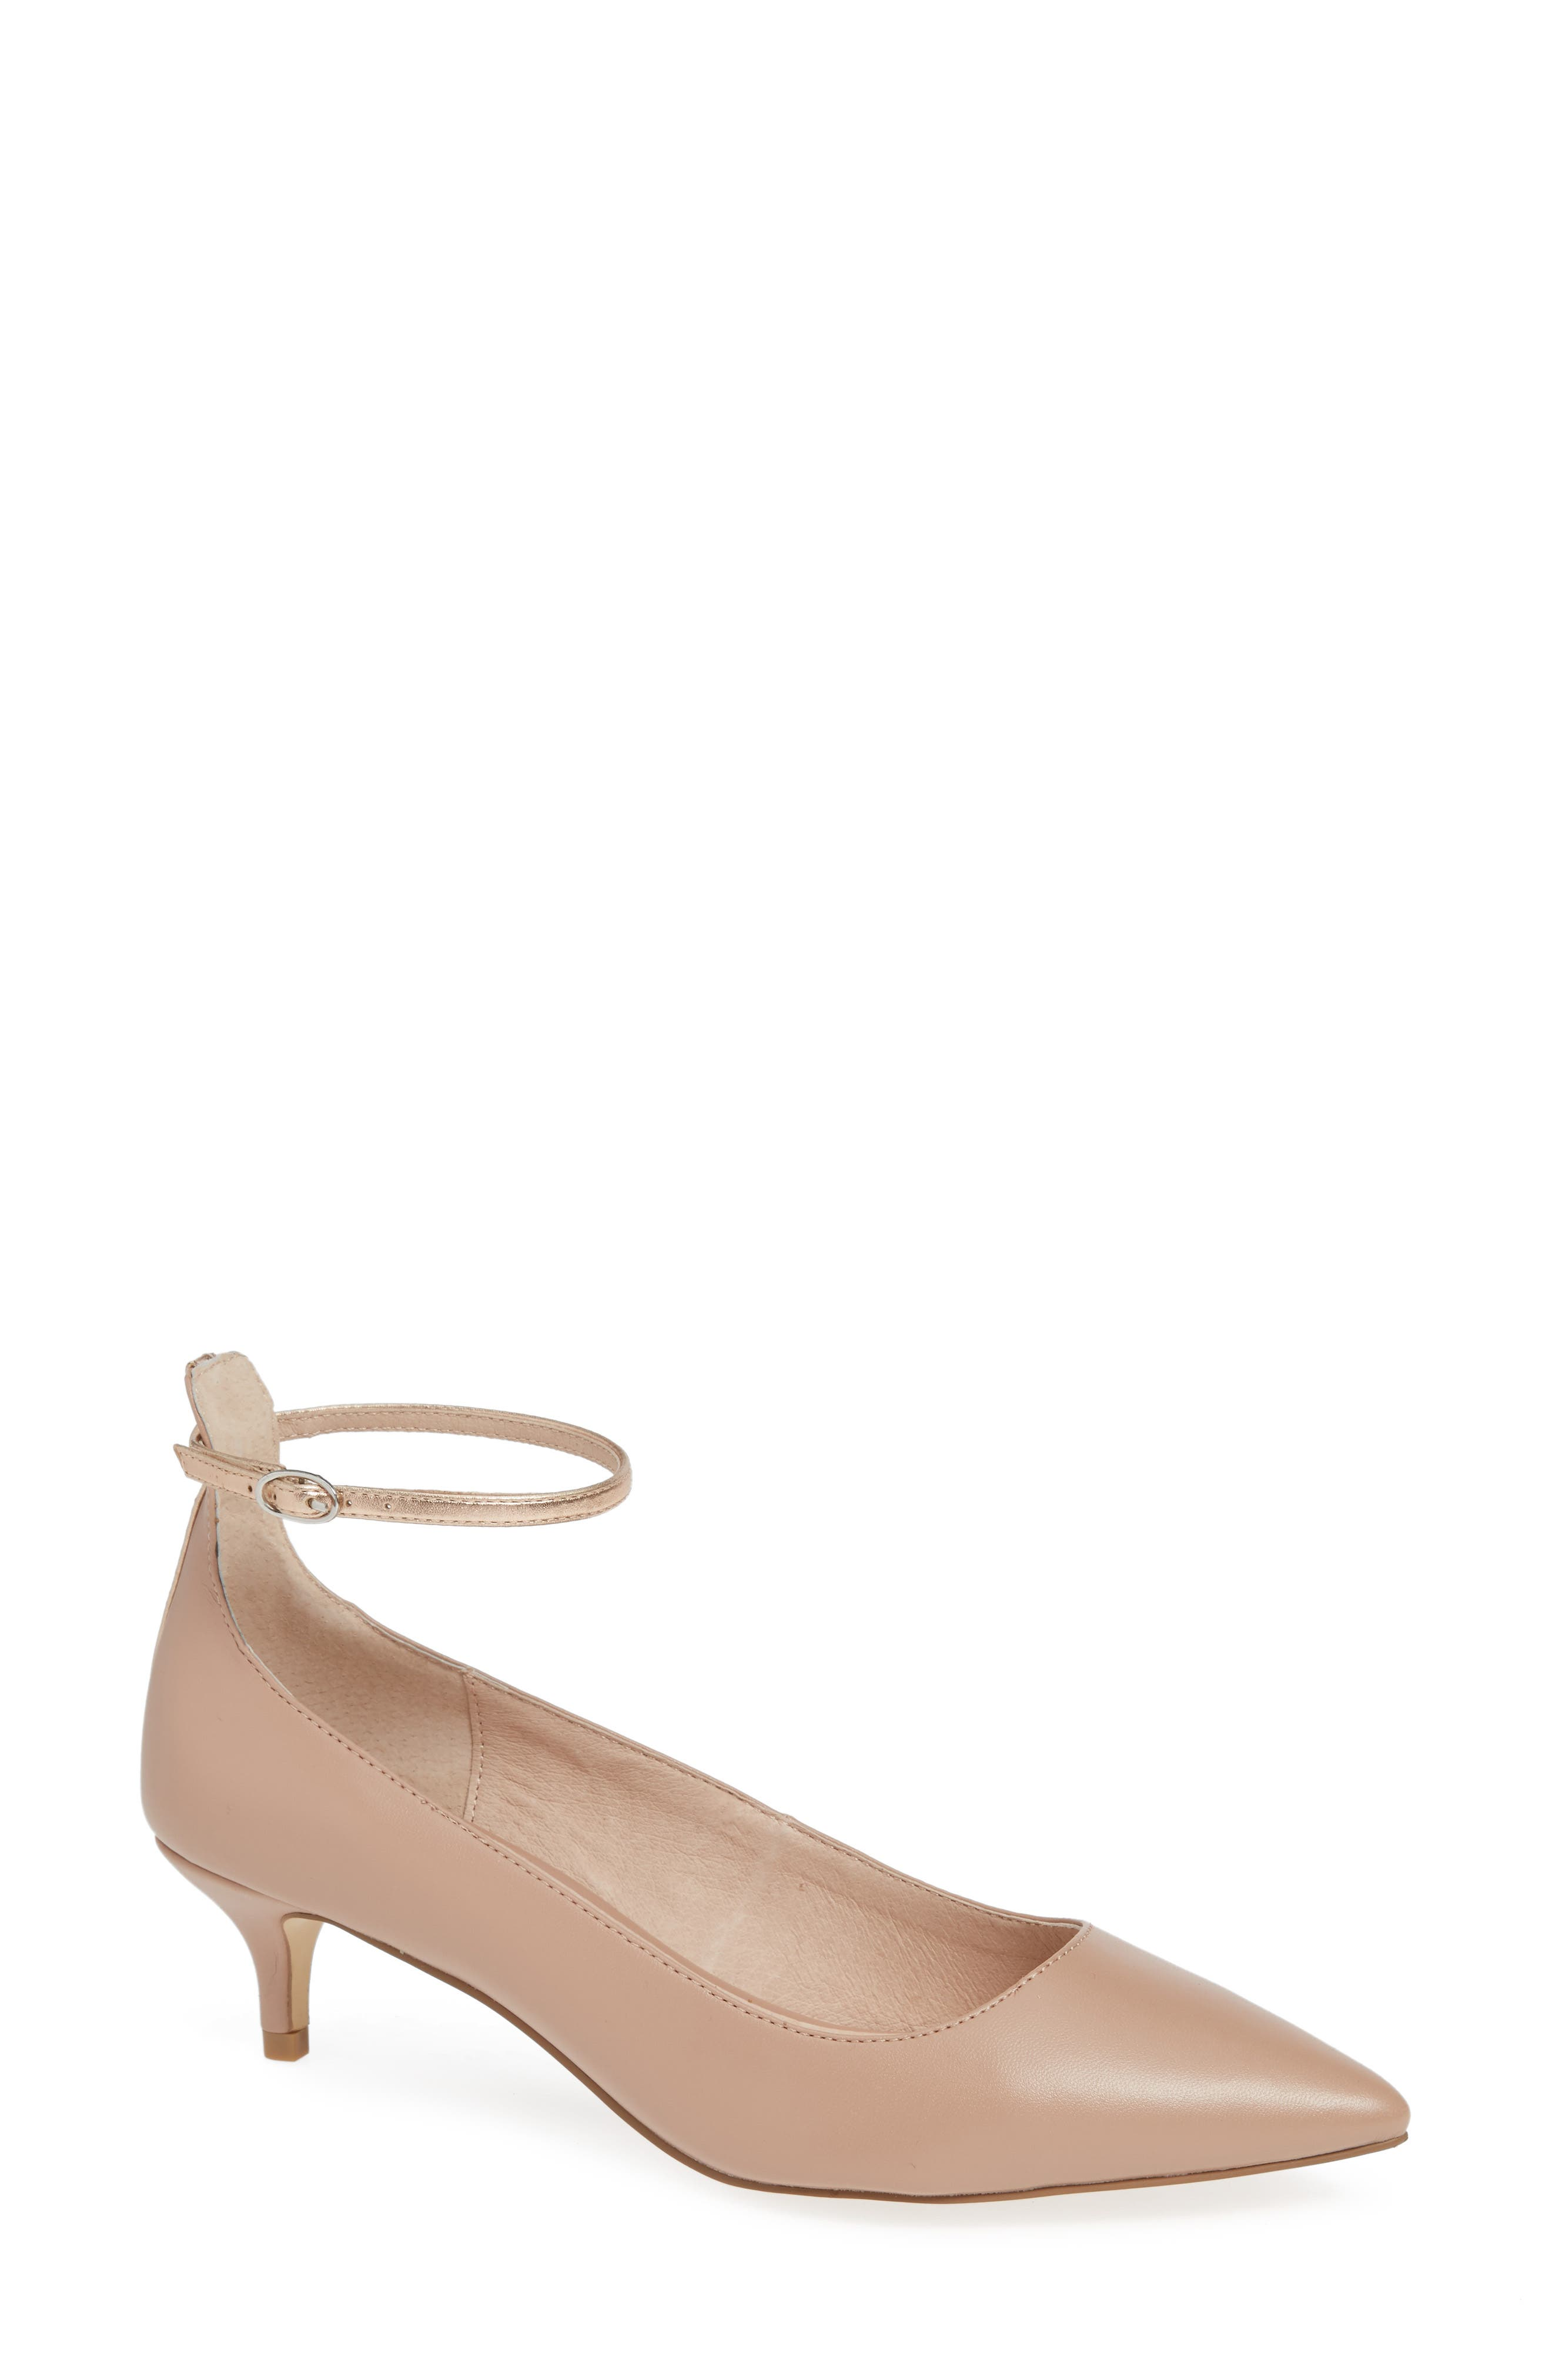 Chinese Laundry Honey Ankle Strap Pump- Beige